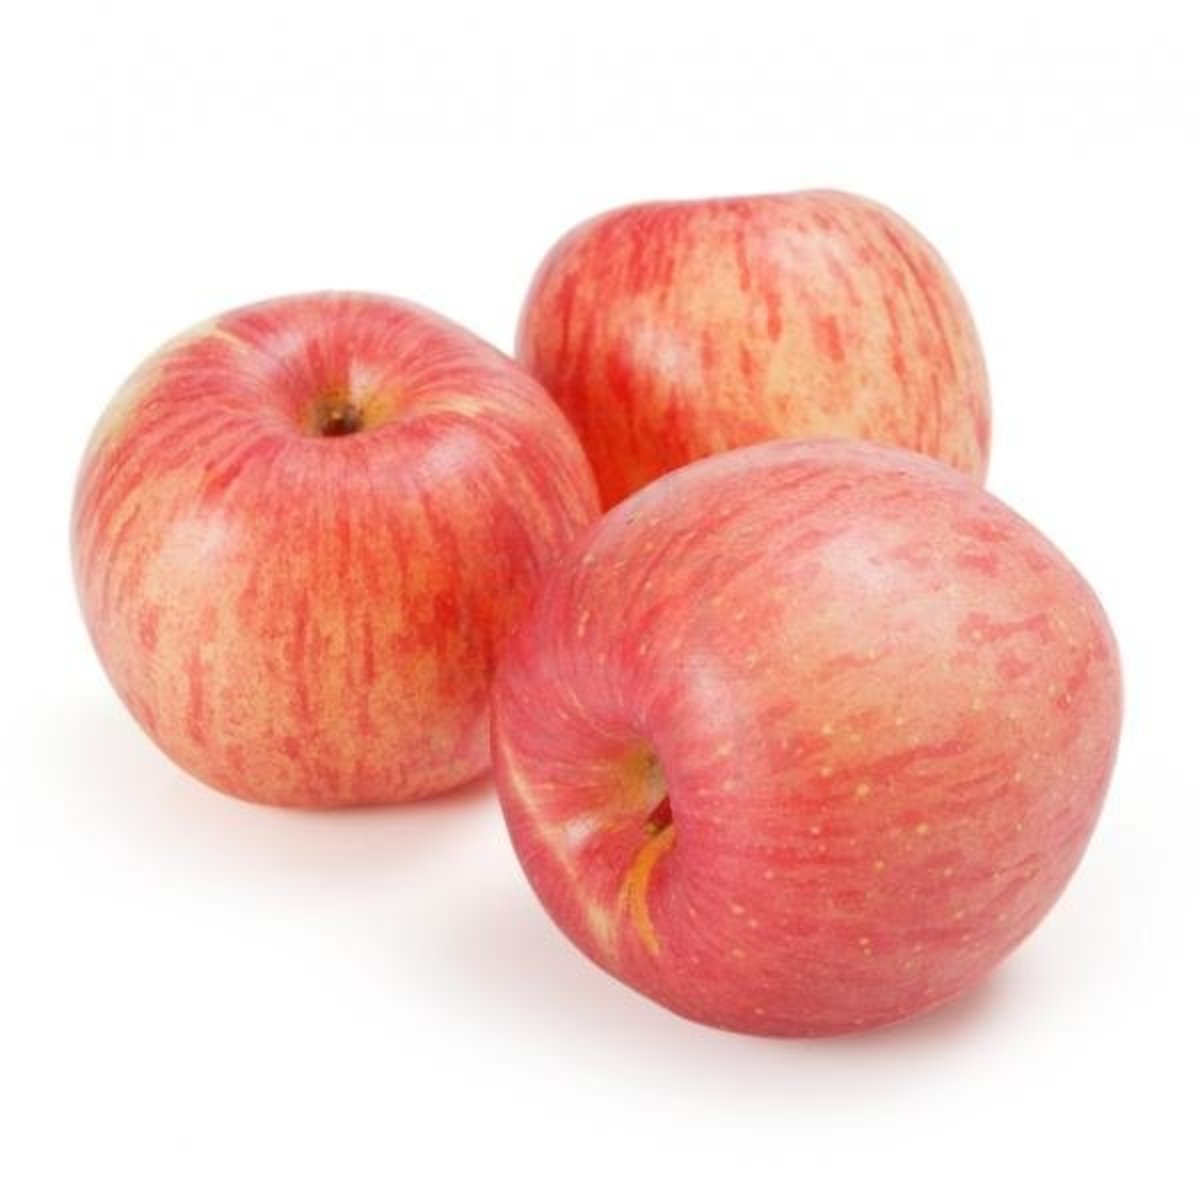 Fuji Apple (4 pcs)